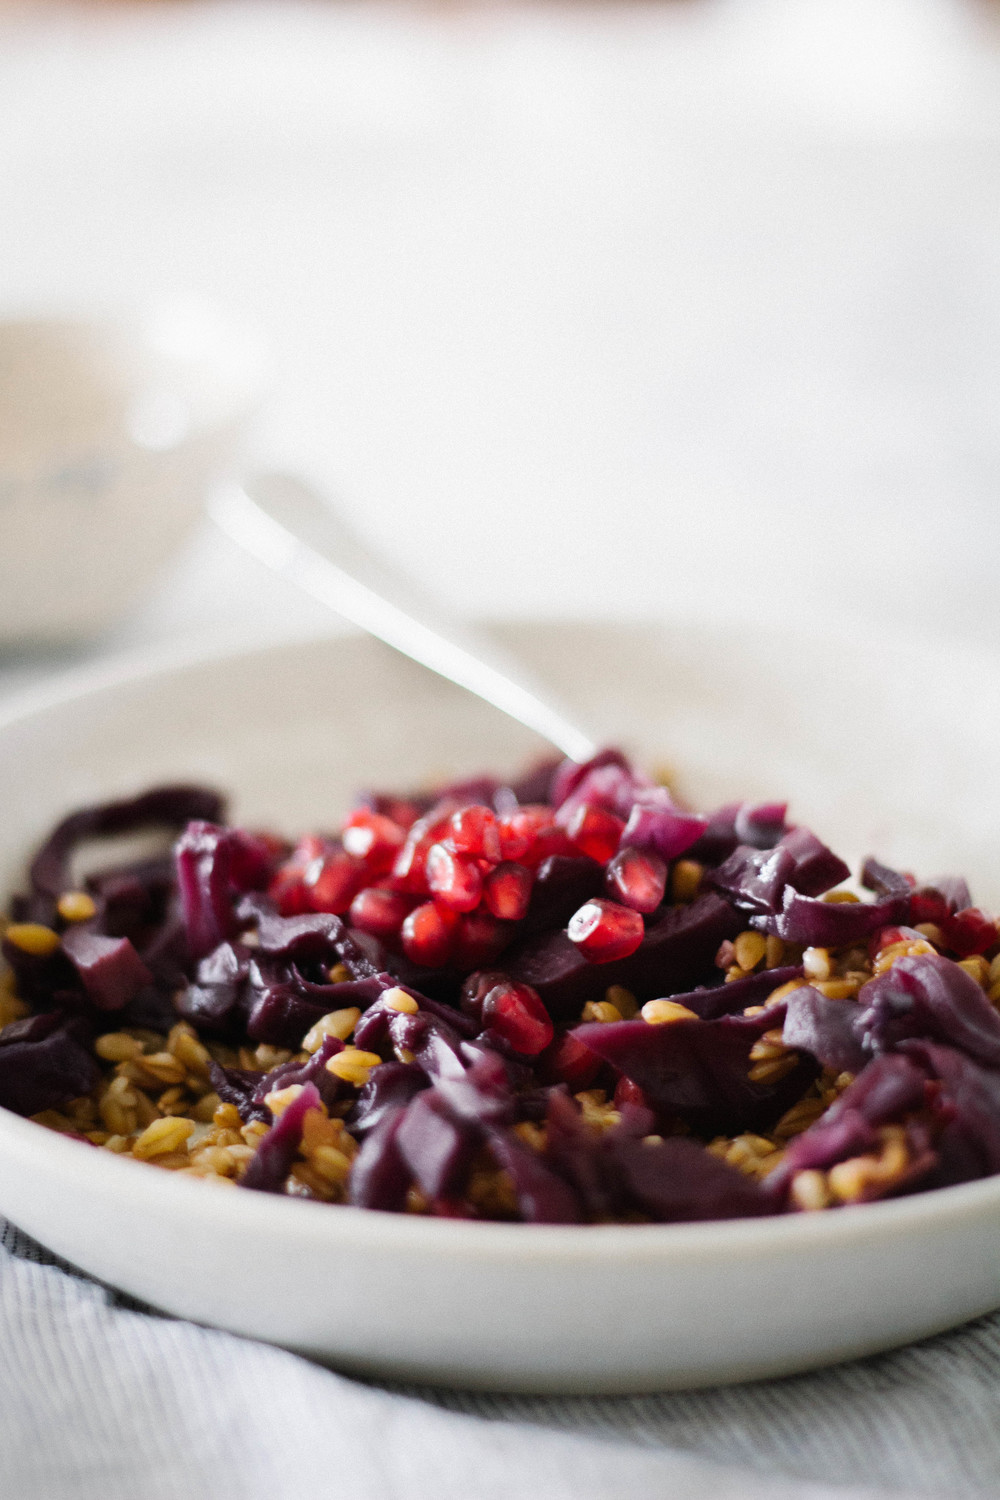 slow-braised cabbage w/ einkorn berries & pomegranate